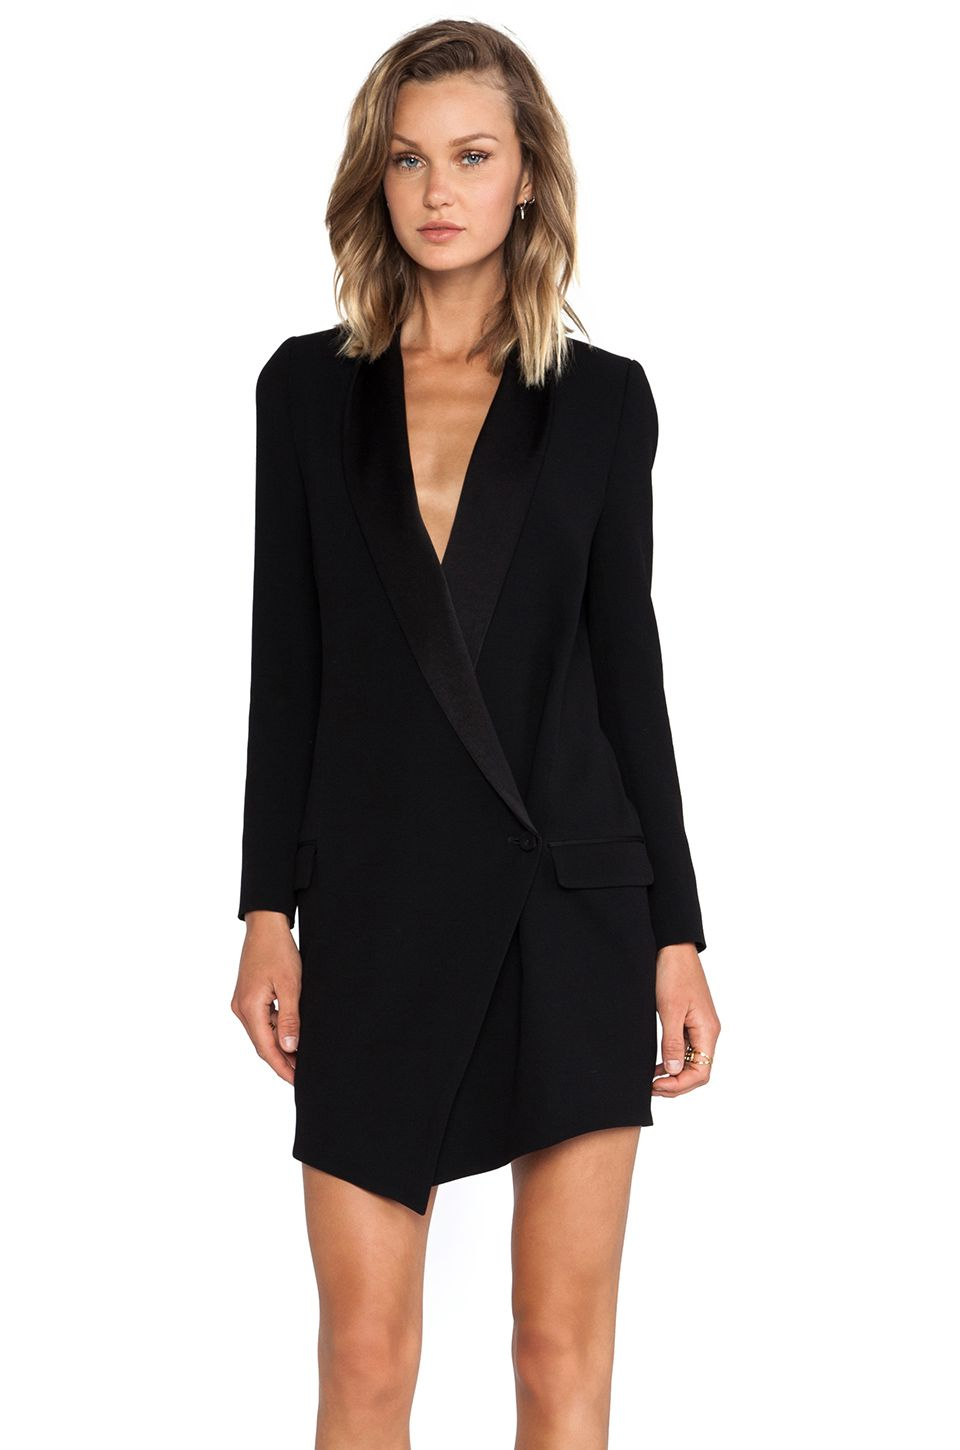 a10a748a418 Haute Hippie Oversized Blazer Dress - rumor is that it s tight through the  hips. Sigh.  (